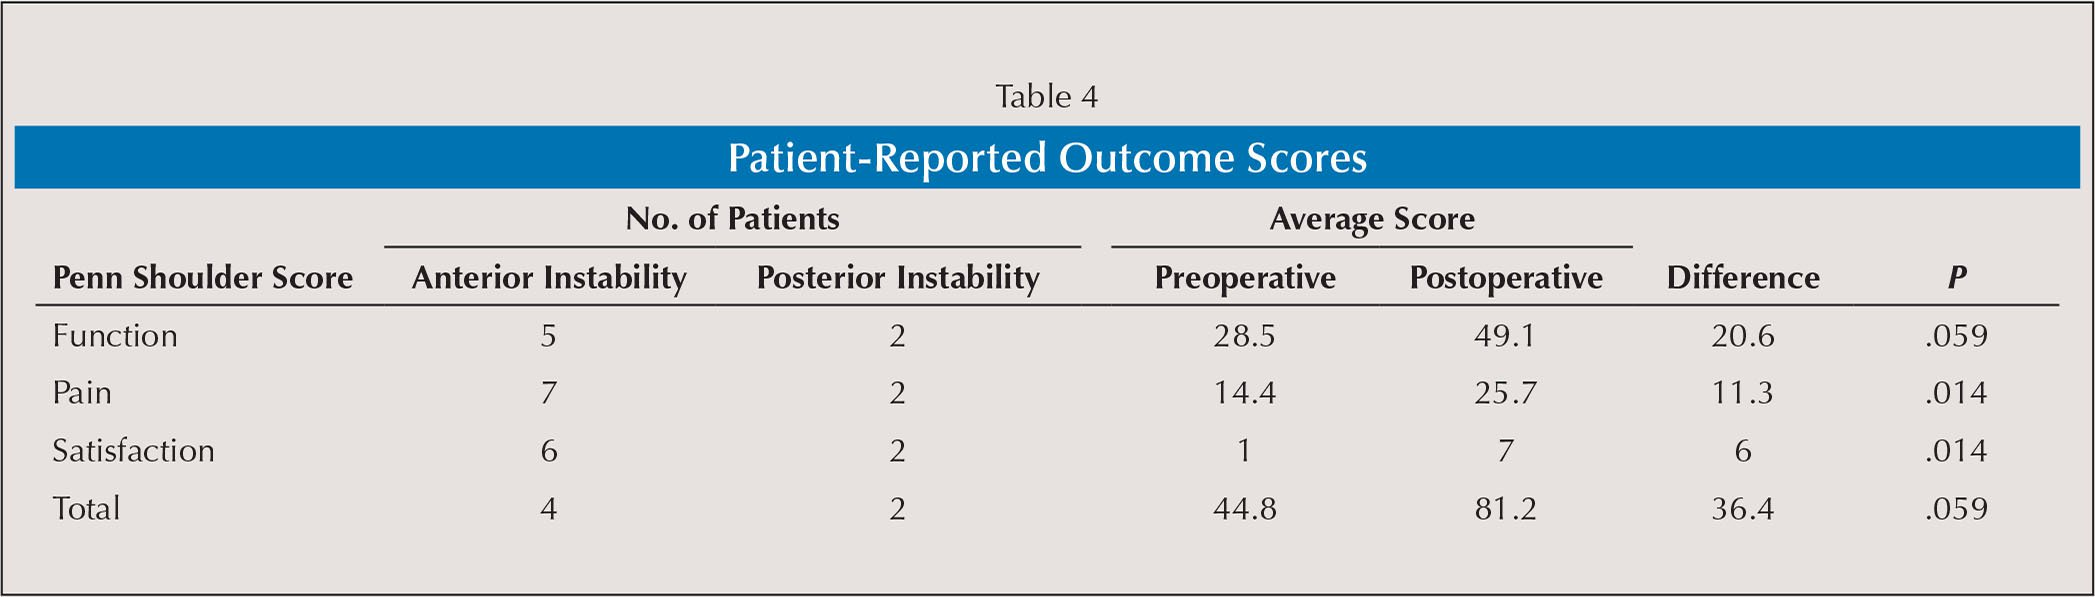 Patient-Reported Outcome Scores